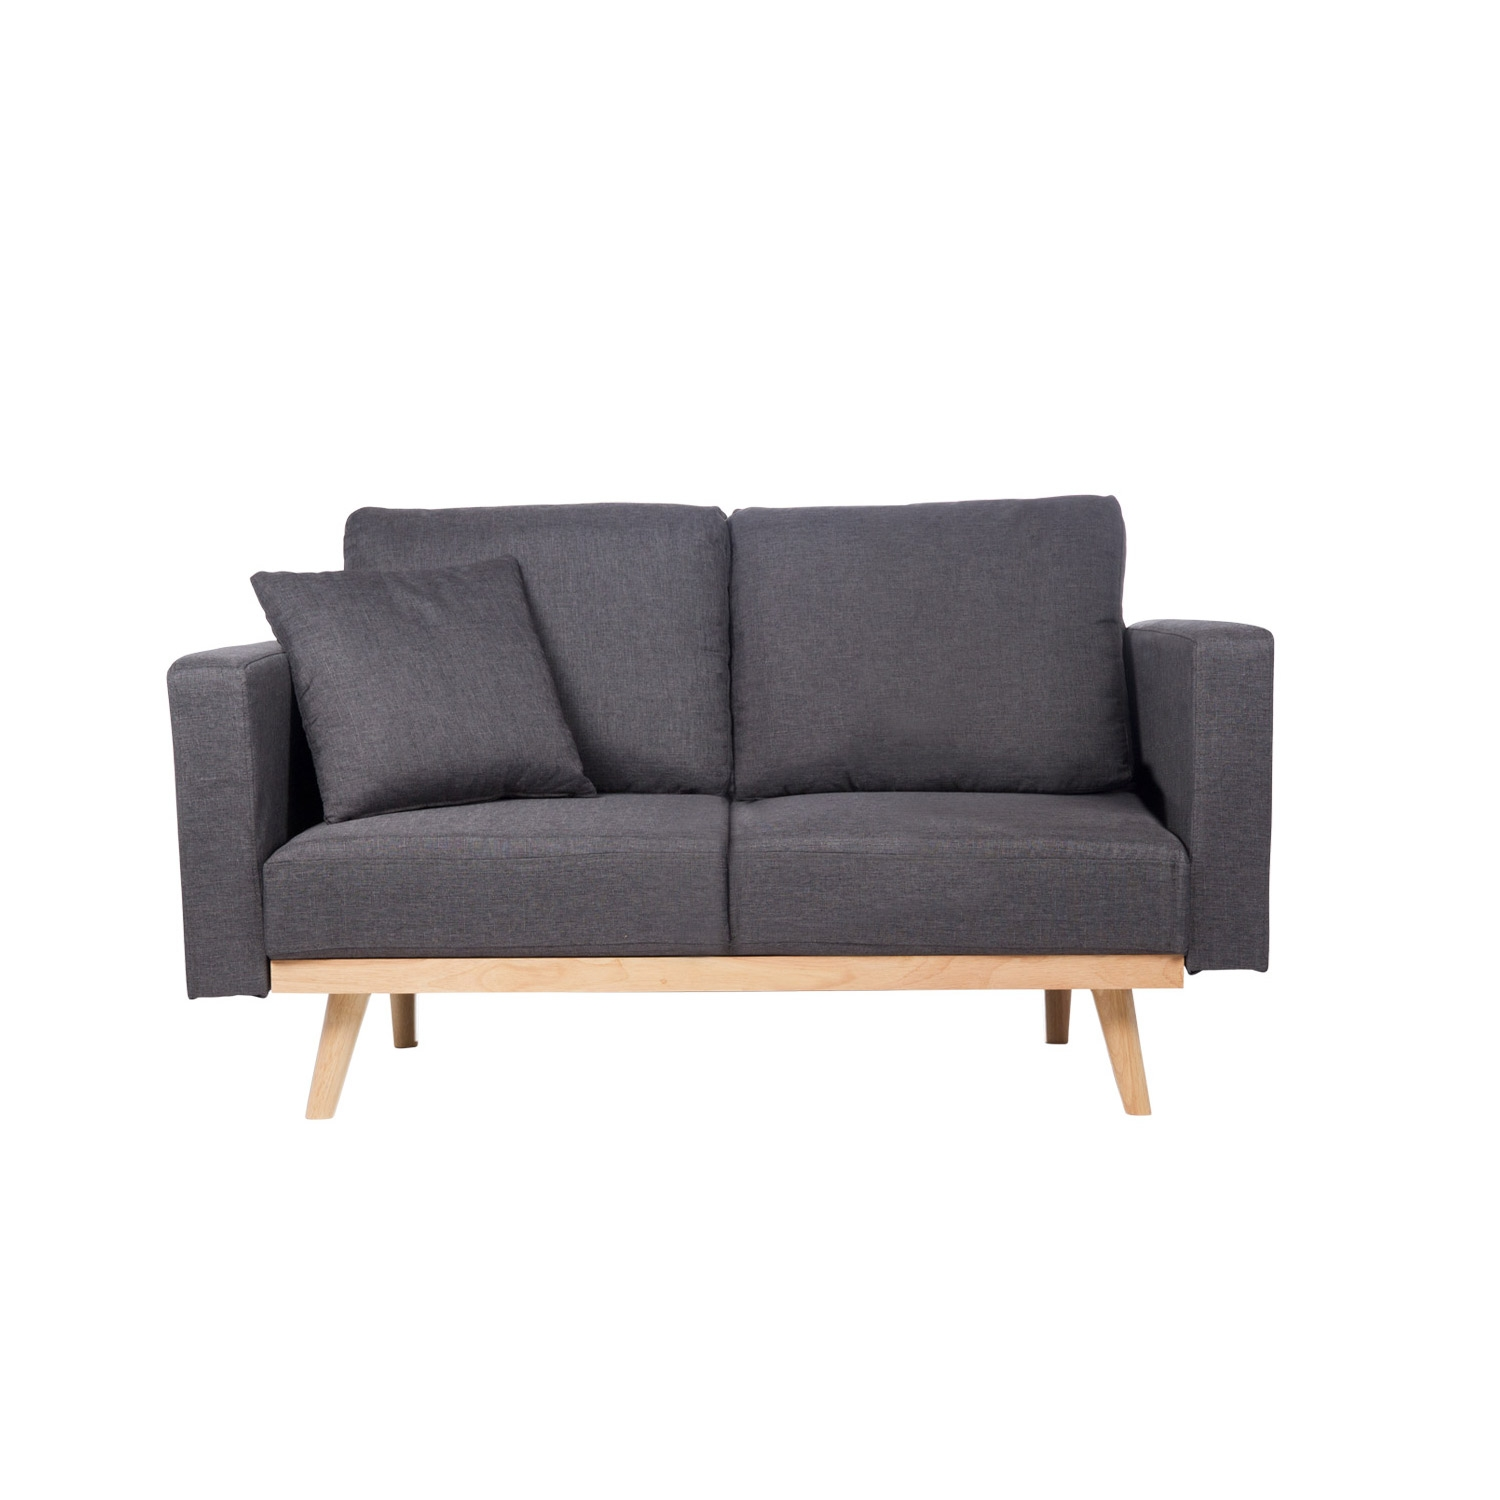 Comprar Sofas Online Sofa Cama 2 Plazas Barato Review Home Decor